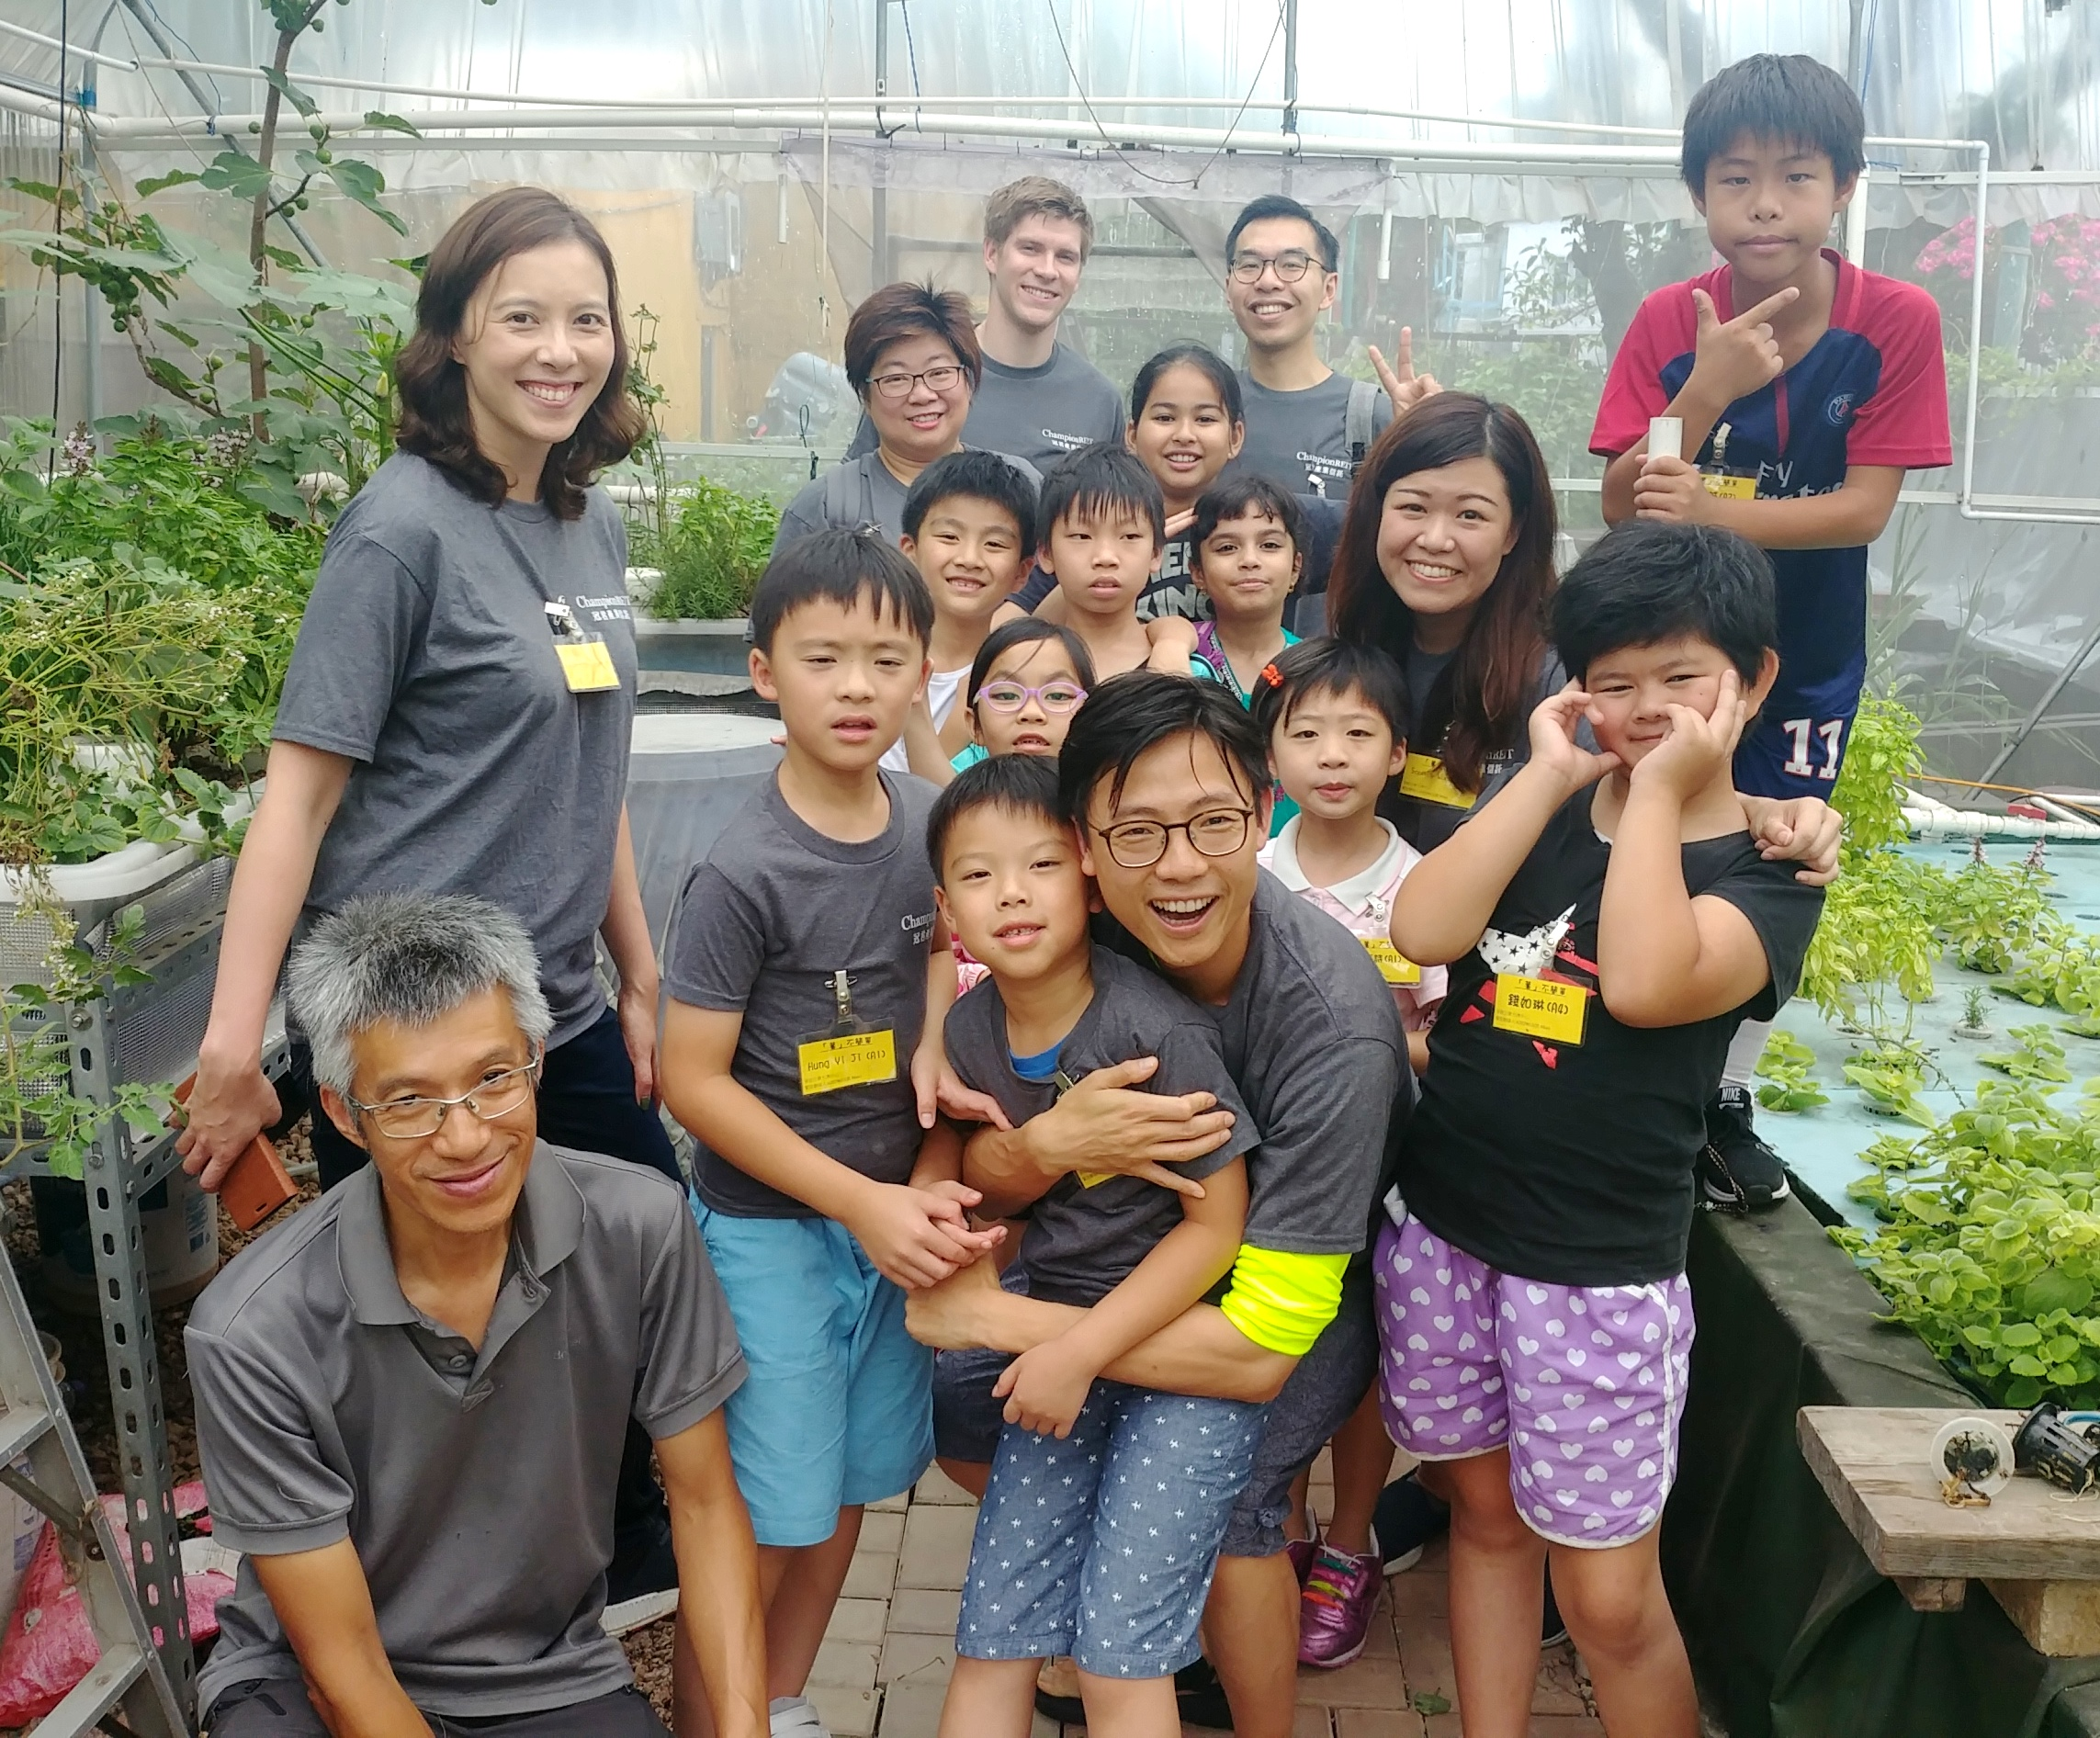 Visiting Tai O Fish Plant with underprivileged children